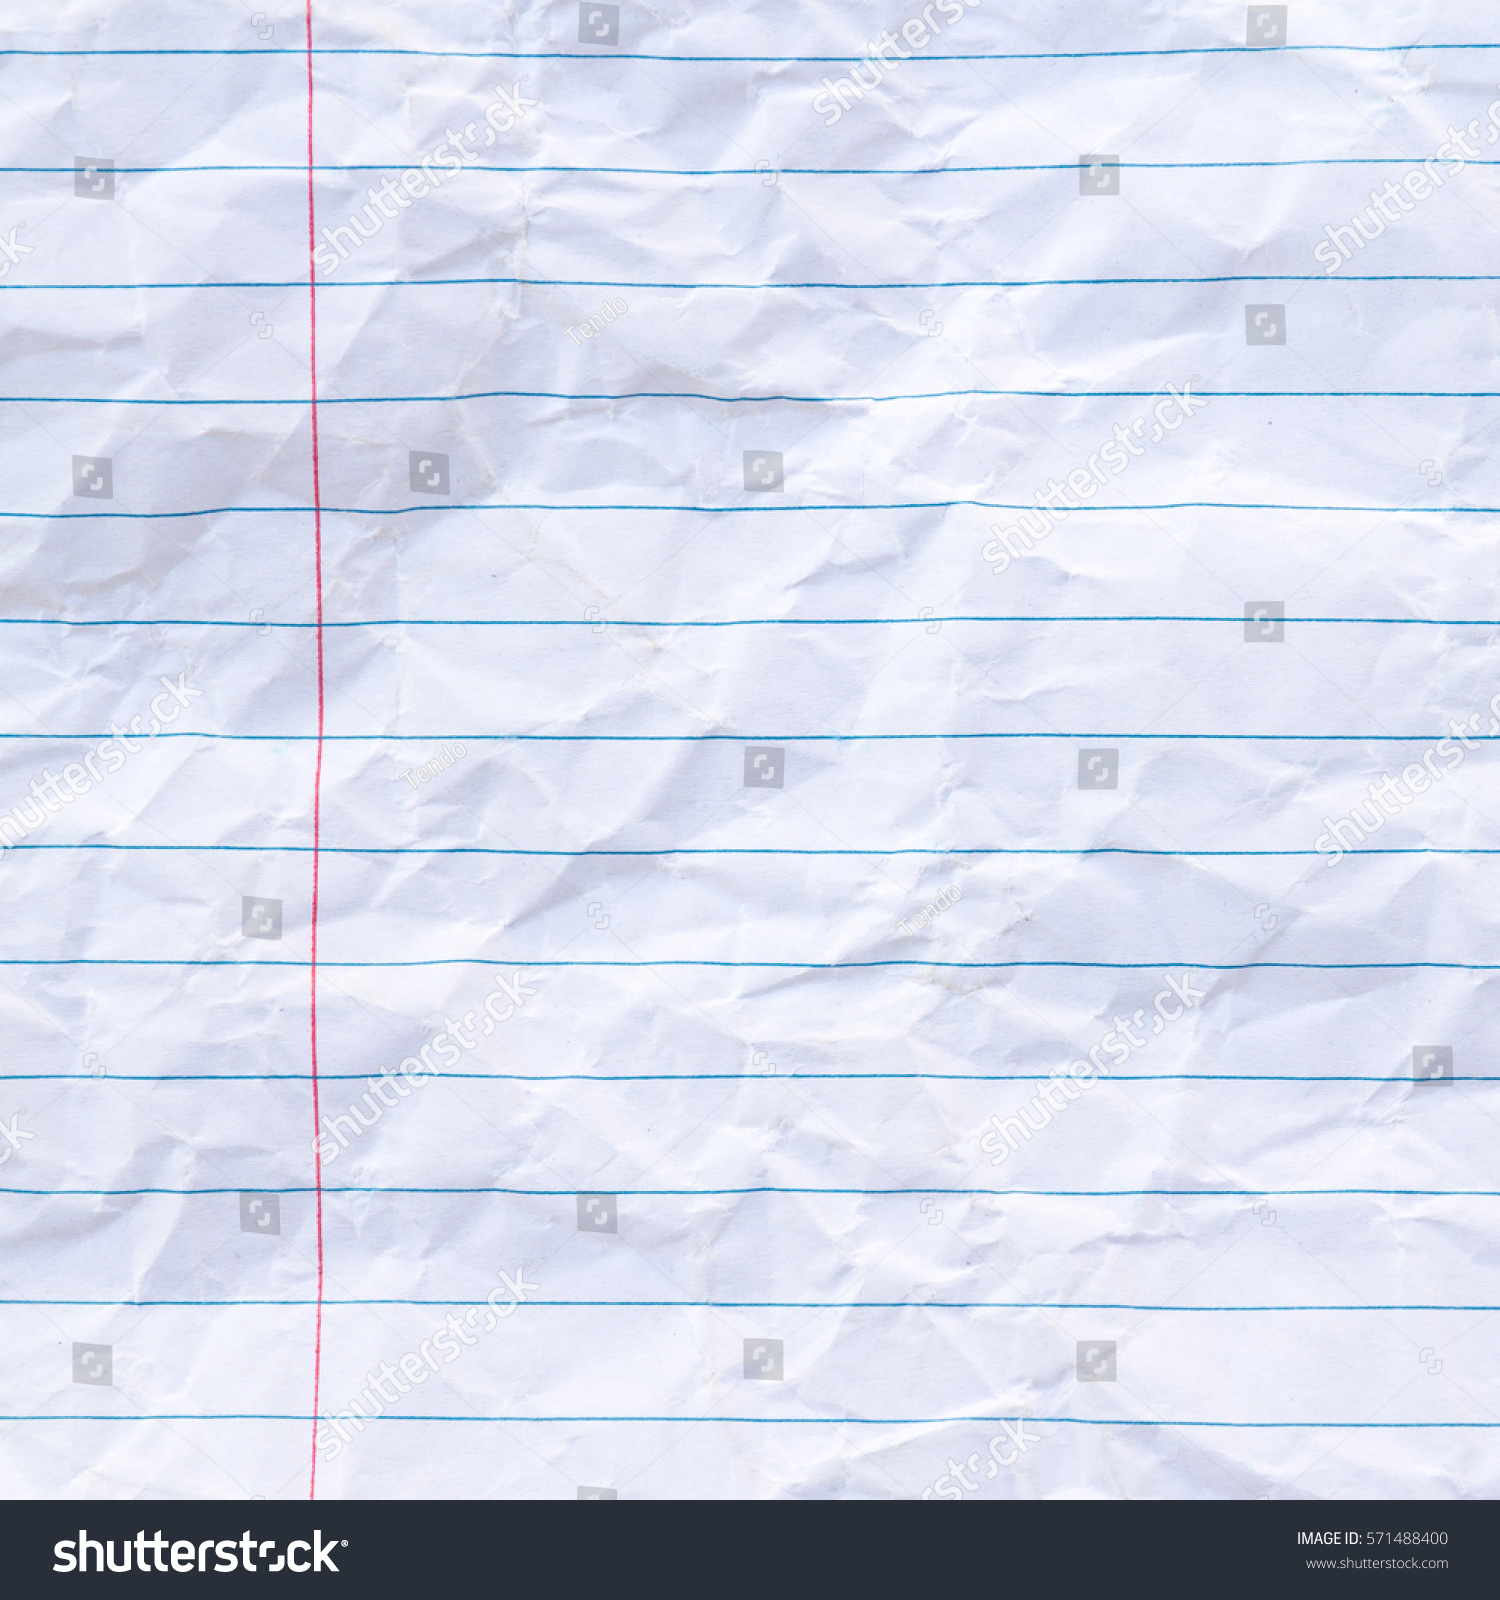 wrinkled notebook lined paper background stock photo (edit now